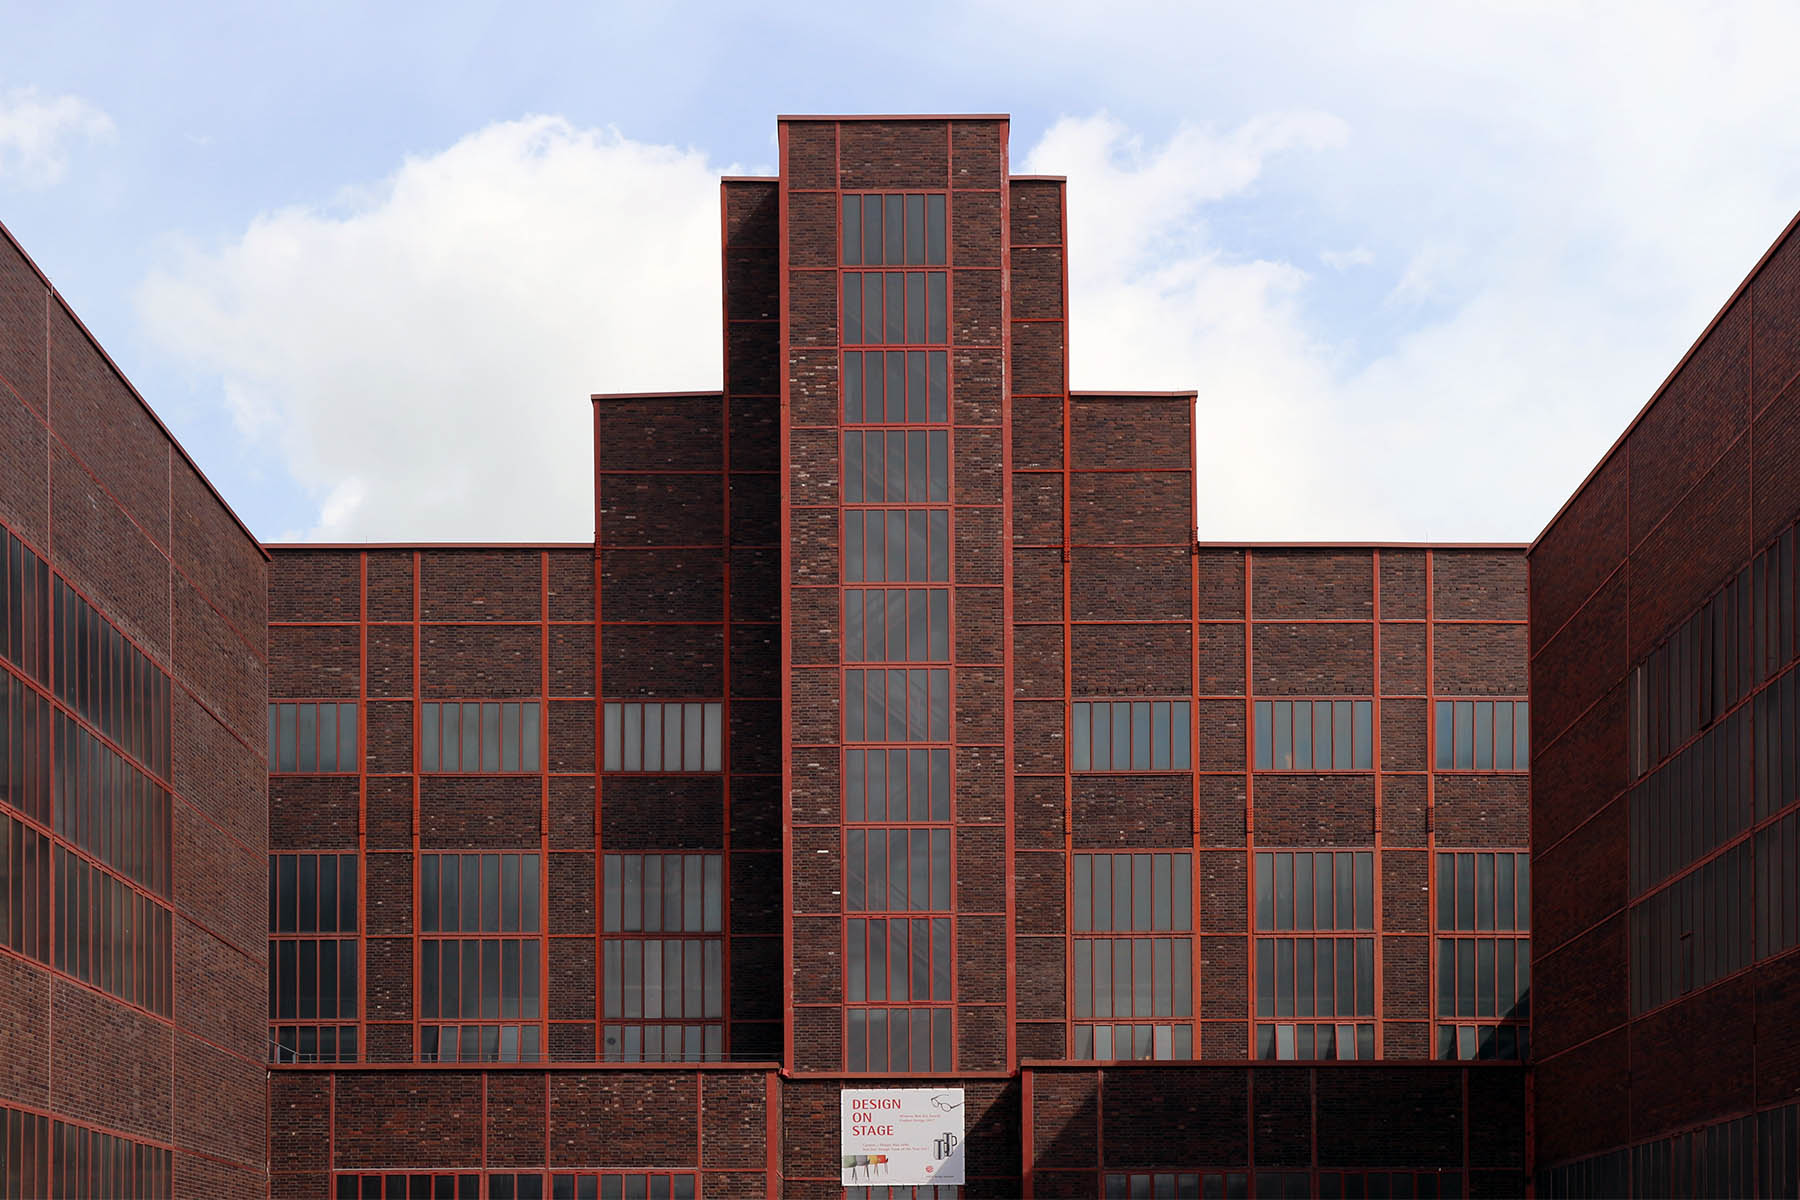 Zeche Zollverein. Built between 1928 and 1929 by the architects Fritz Schupp and Martin Kremmer, the former boiler house served as the power house of the Zollverein Coal Mine Industrial Complex for many years